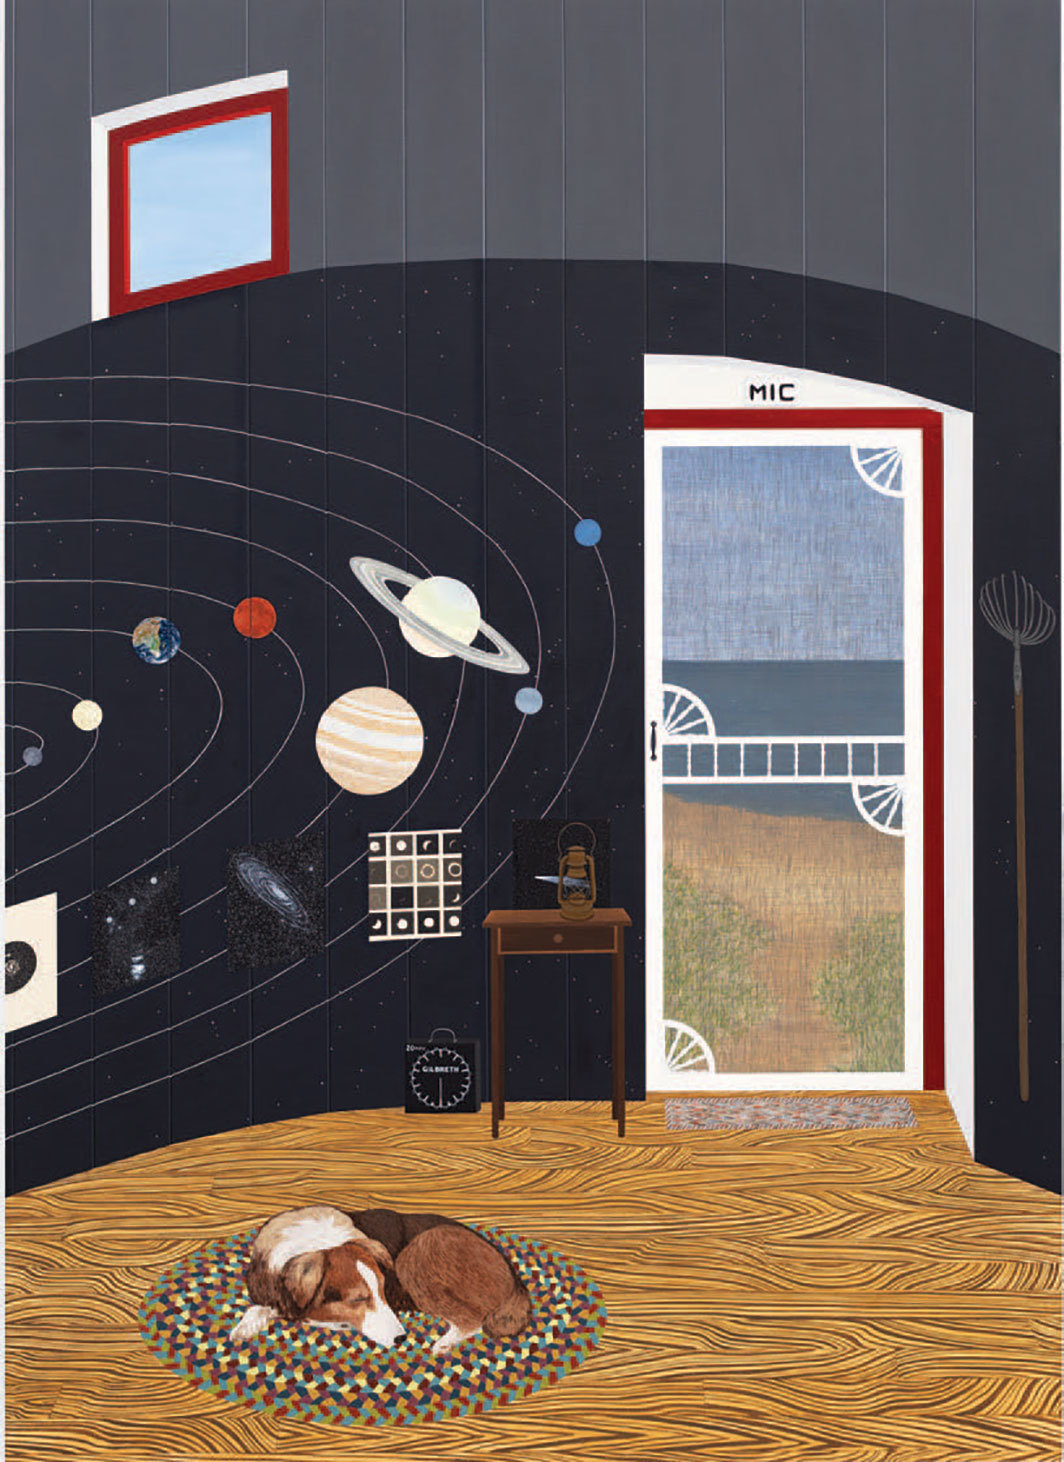 "Becky Suss, Mic (Lighthouse with Solar System), 2019, oil on canvas, 84 × 60""."